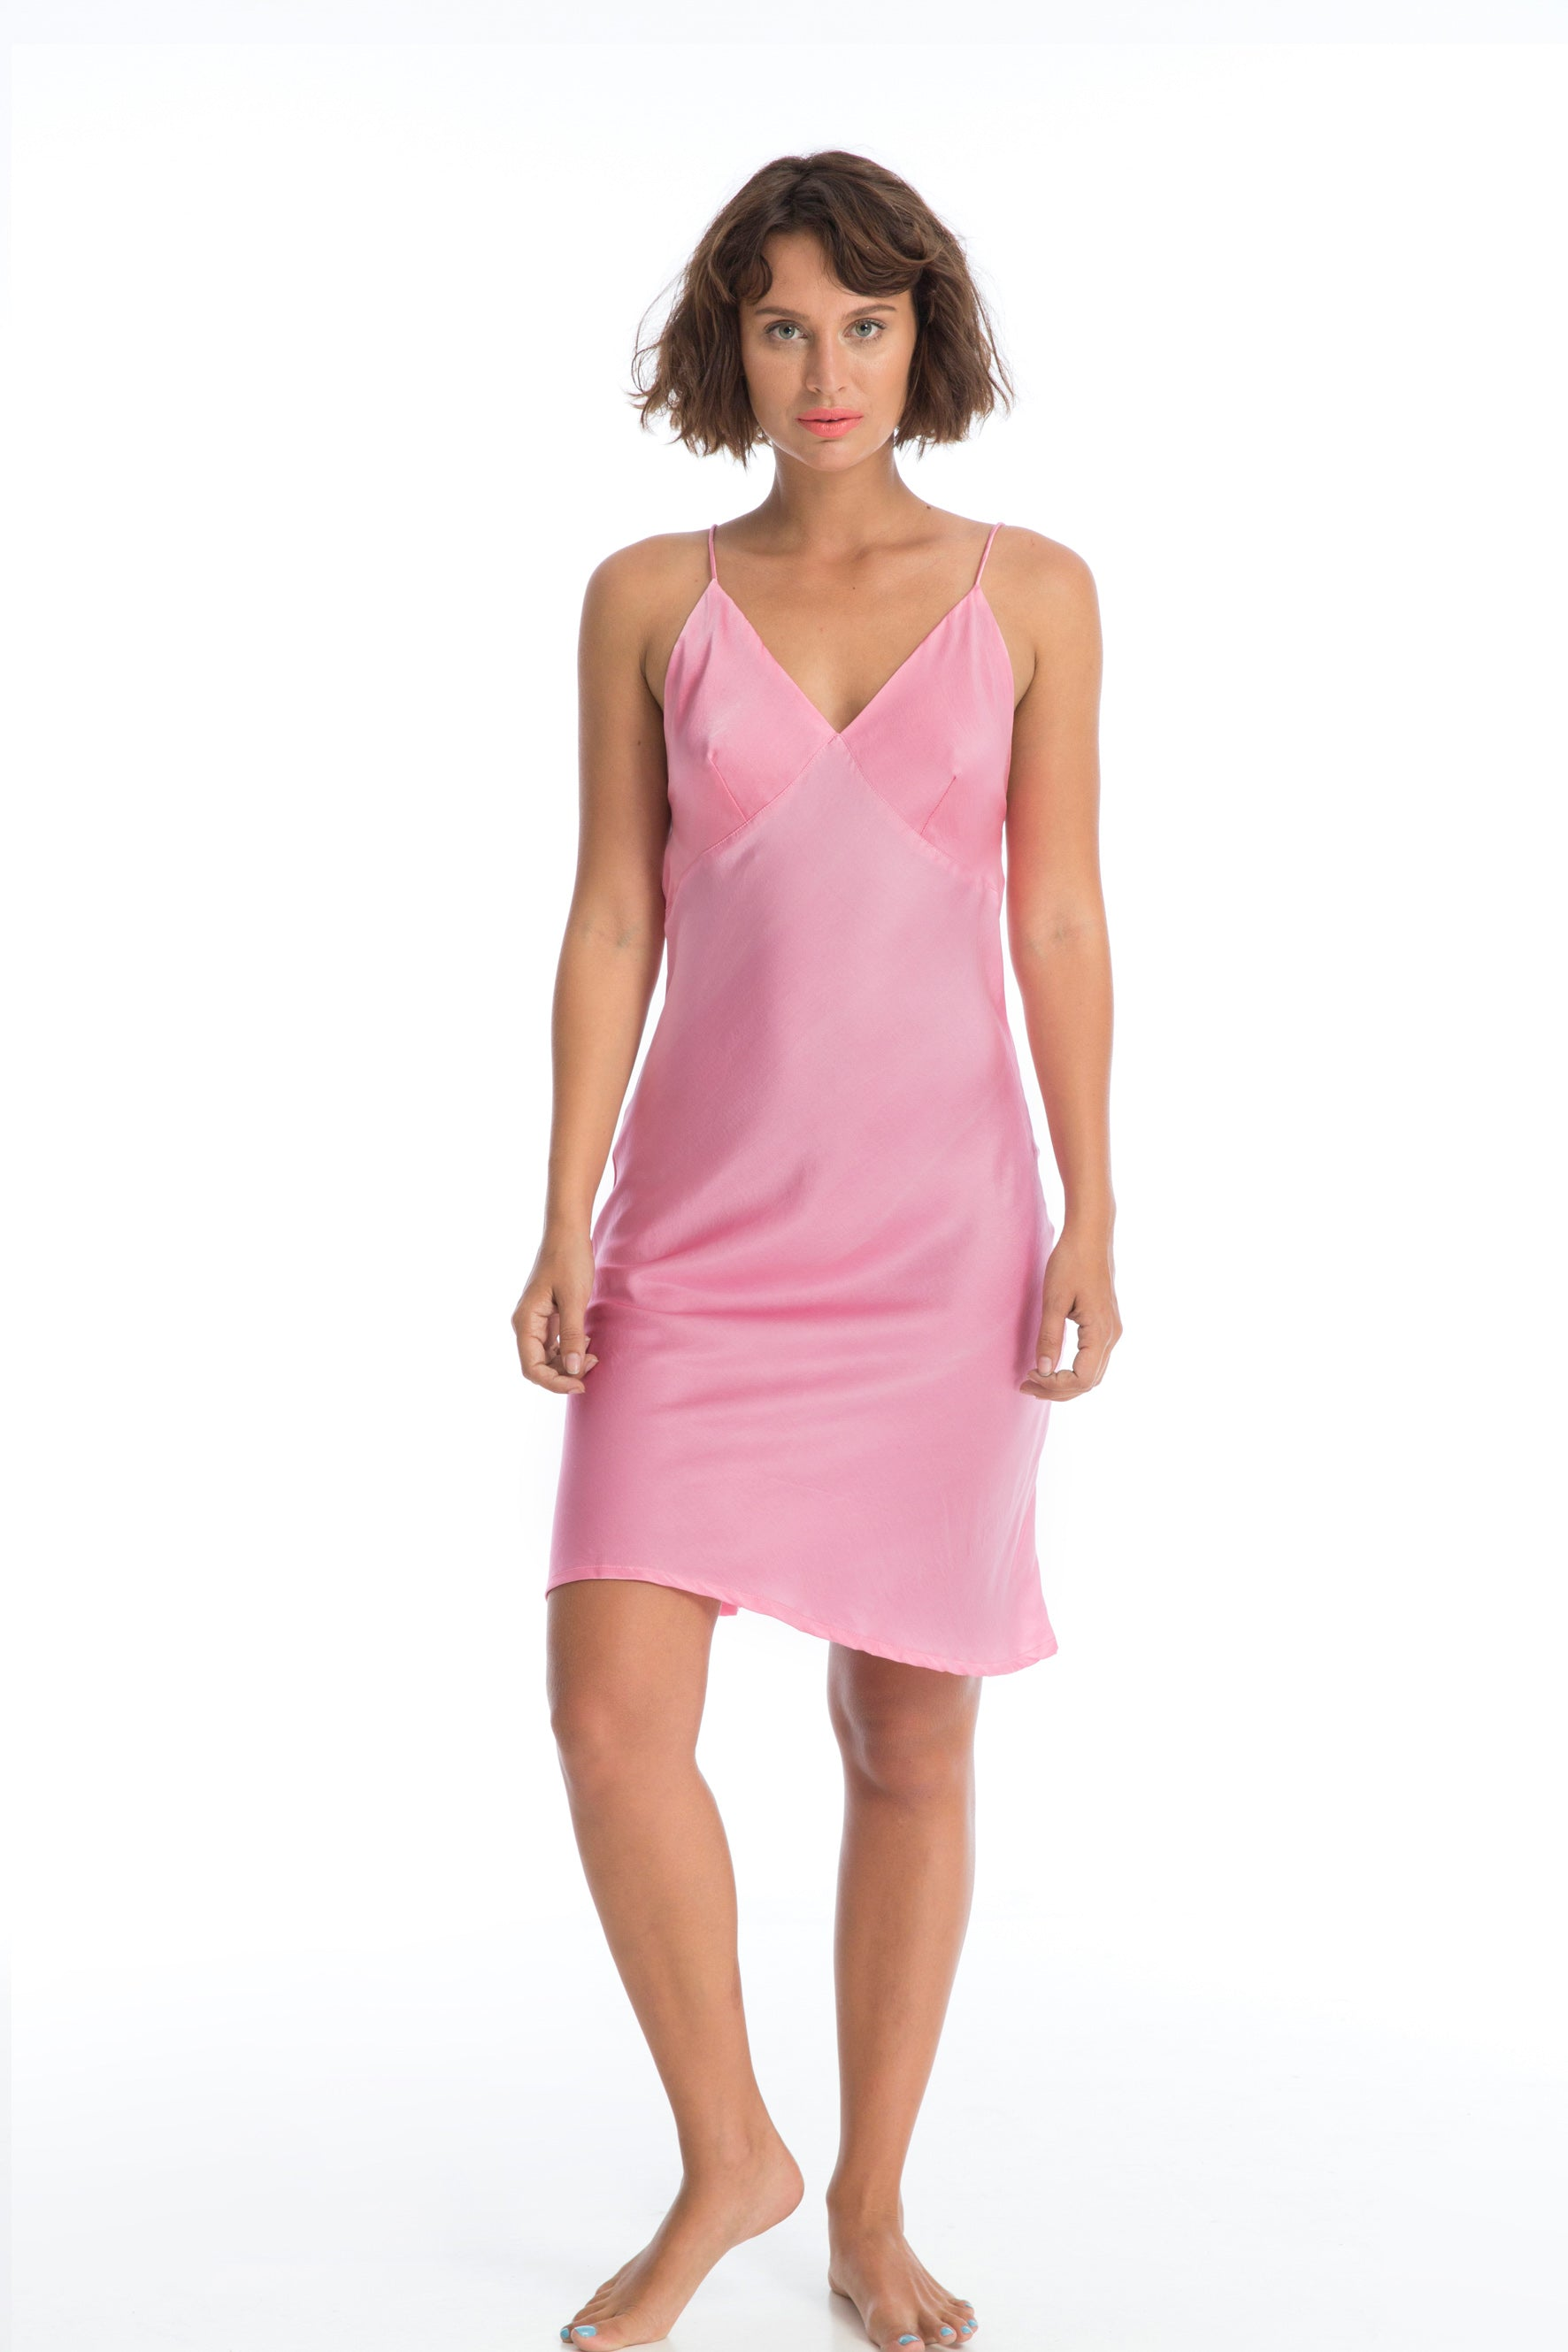 05cac8dd0d308 LILA SILK SLIP DRESS - NATURAL PINK DYE – Rosa Bloom